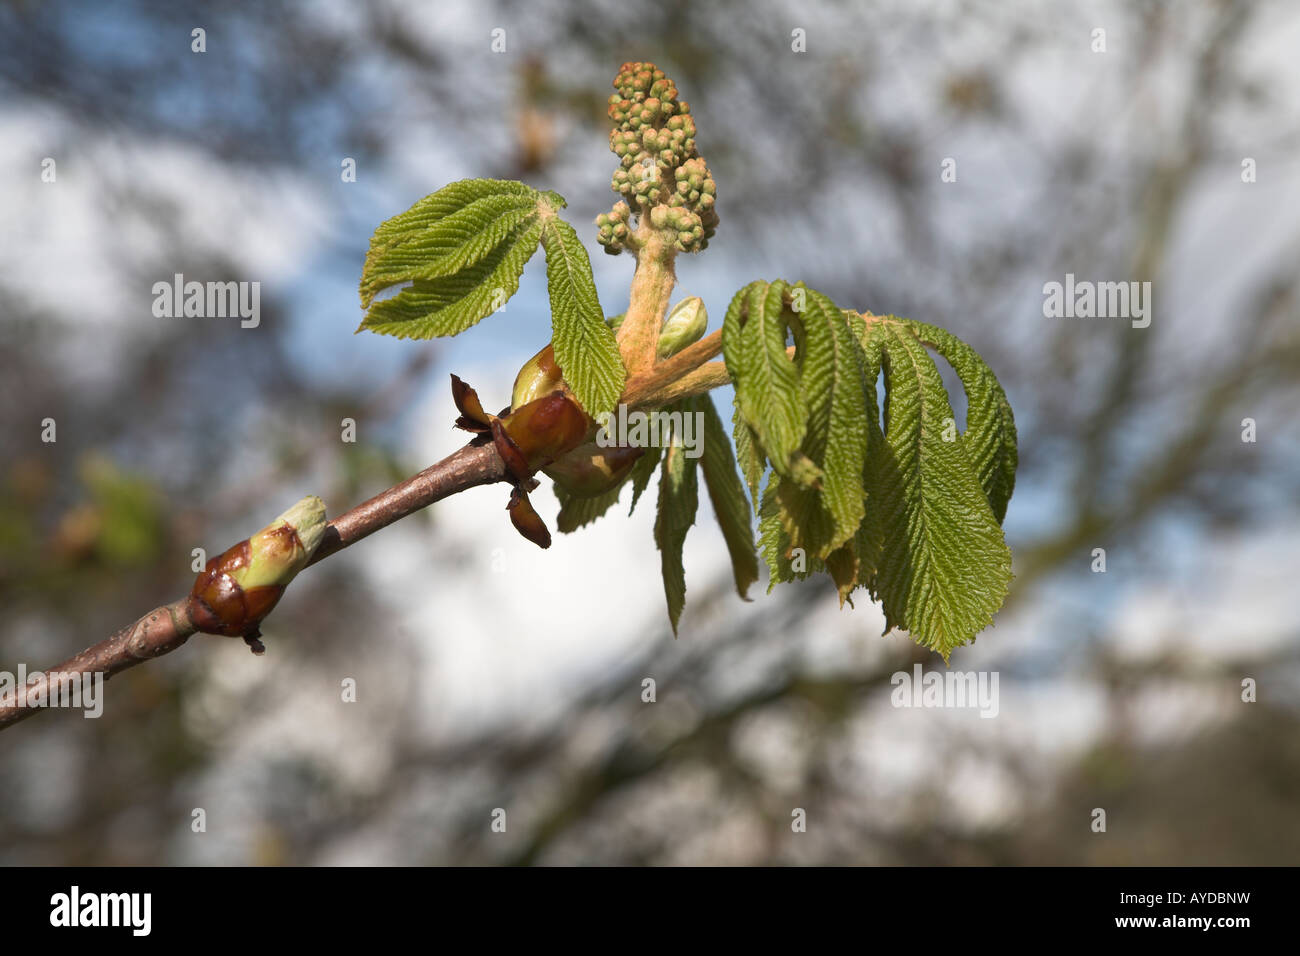 Buds and leaves of horse chestnut tree - aesculus hippocastanum - Stock Image